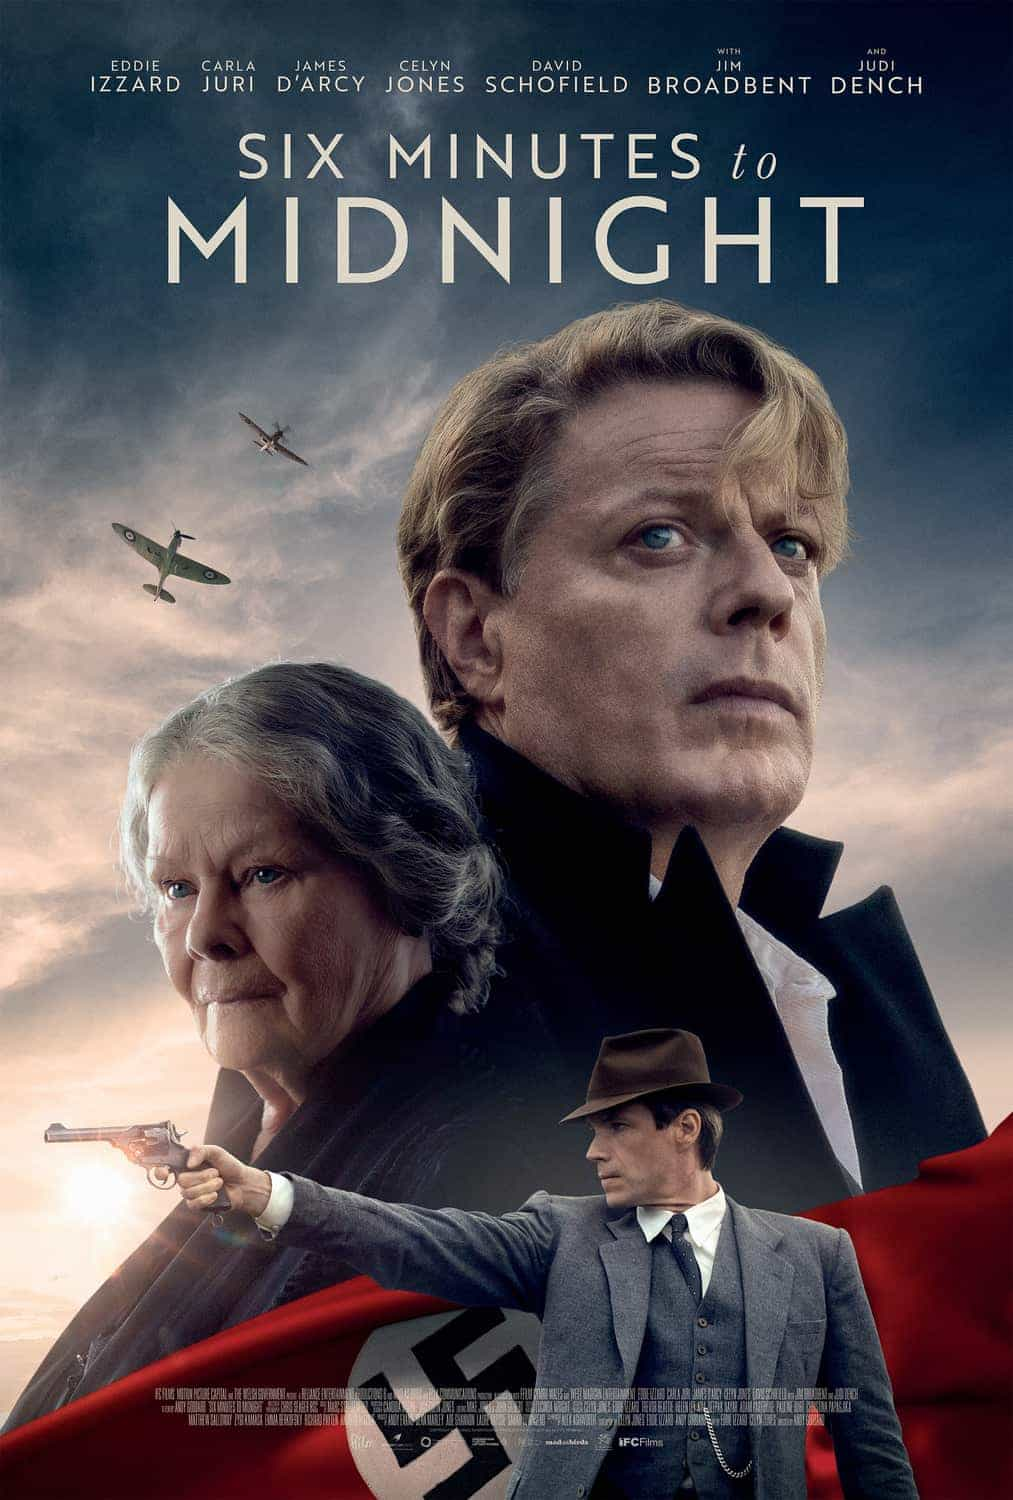 Six Minutes To Midnight has been given a 12A age rating in the UK for moderate violence, threat, bloody images